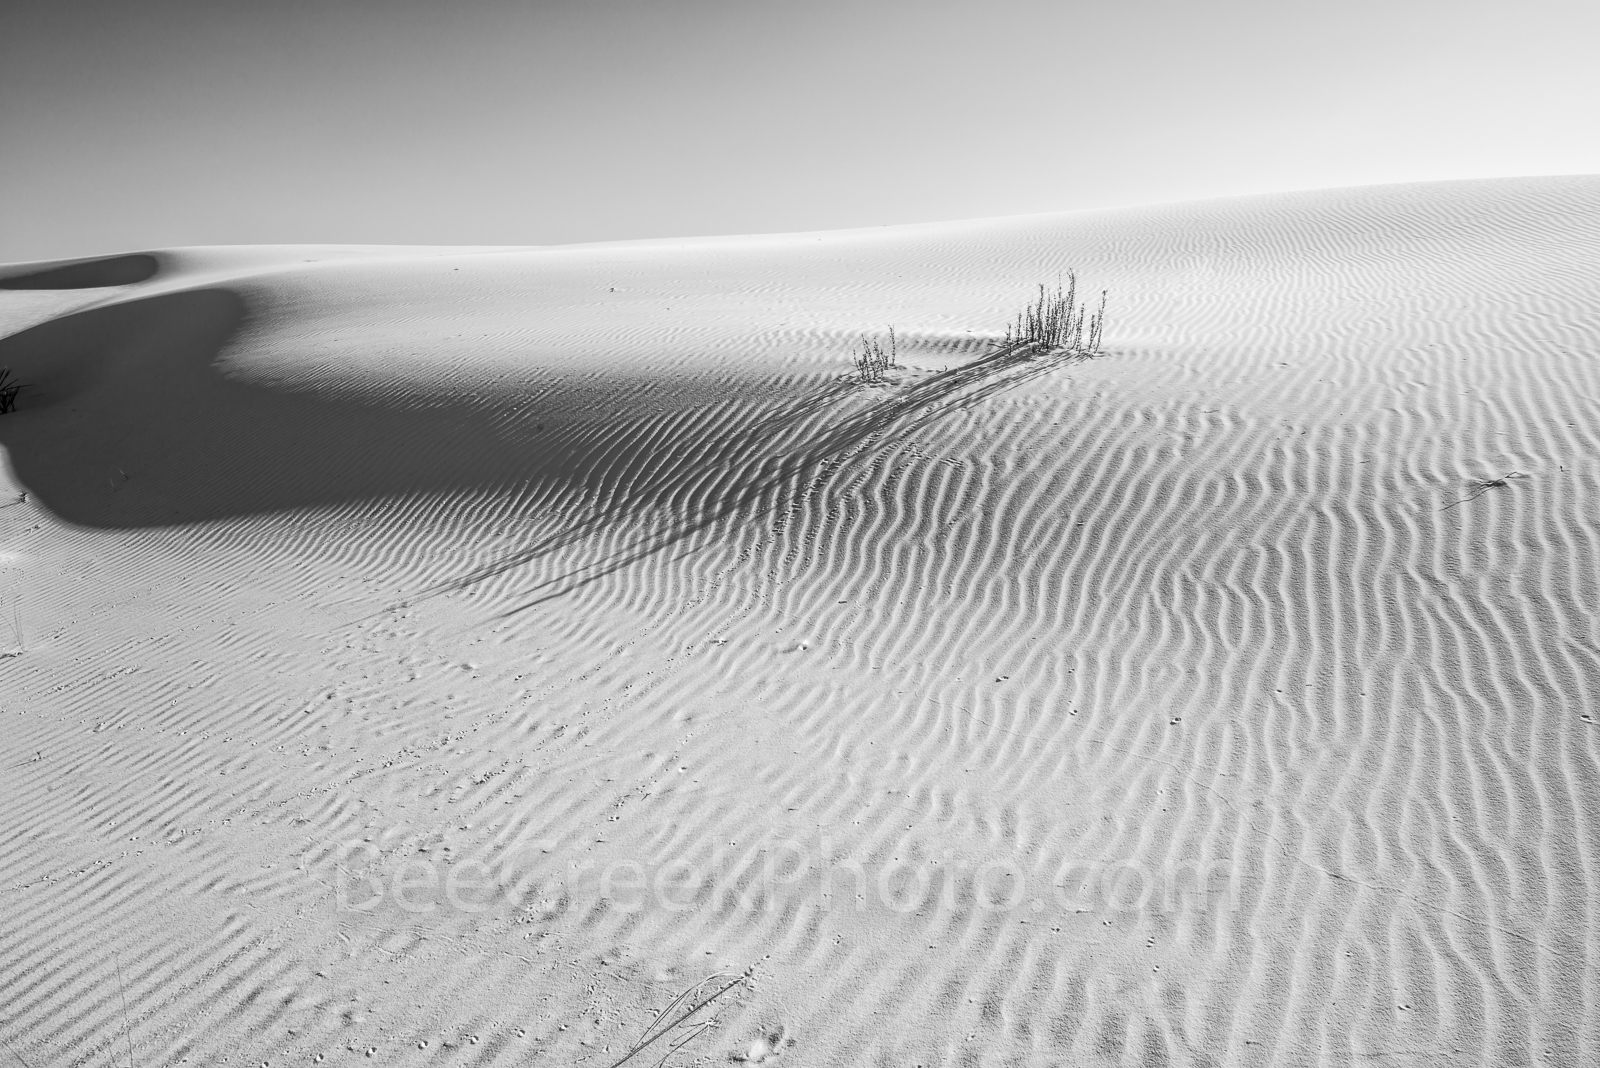 white sands dunes, small tracks, shadows, sand, white sands, sand dunes, desert southwest, desert landscape, new mexico, gypsum, patterns, waves of patterns, images of white sands, photos of wihite sa, photo